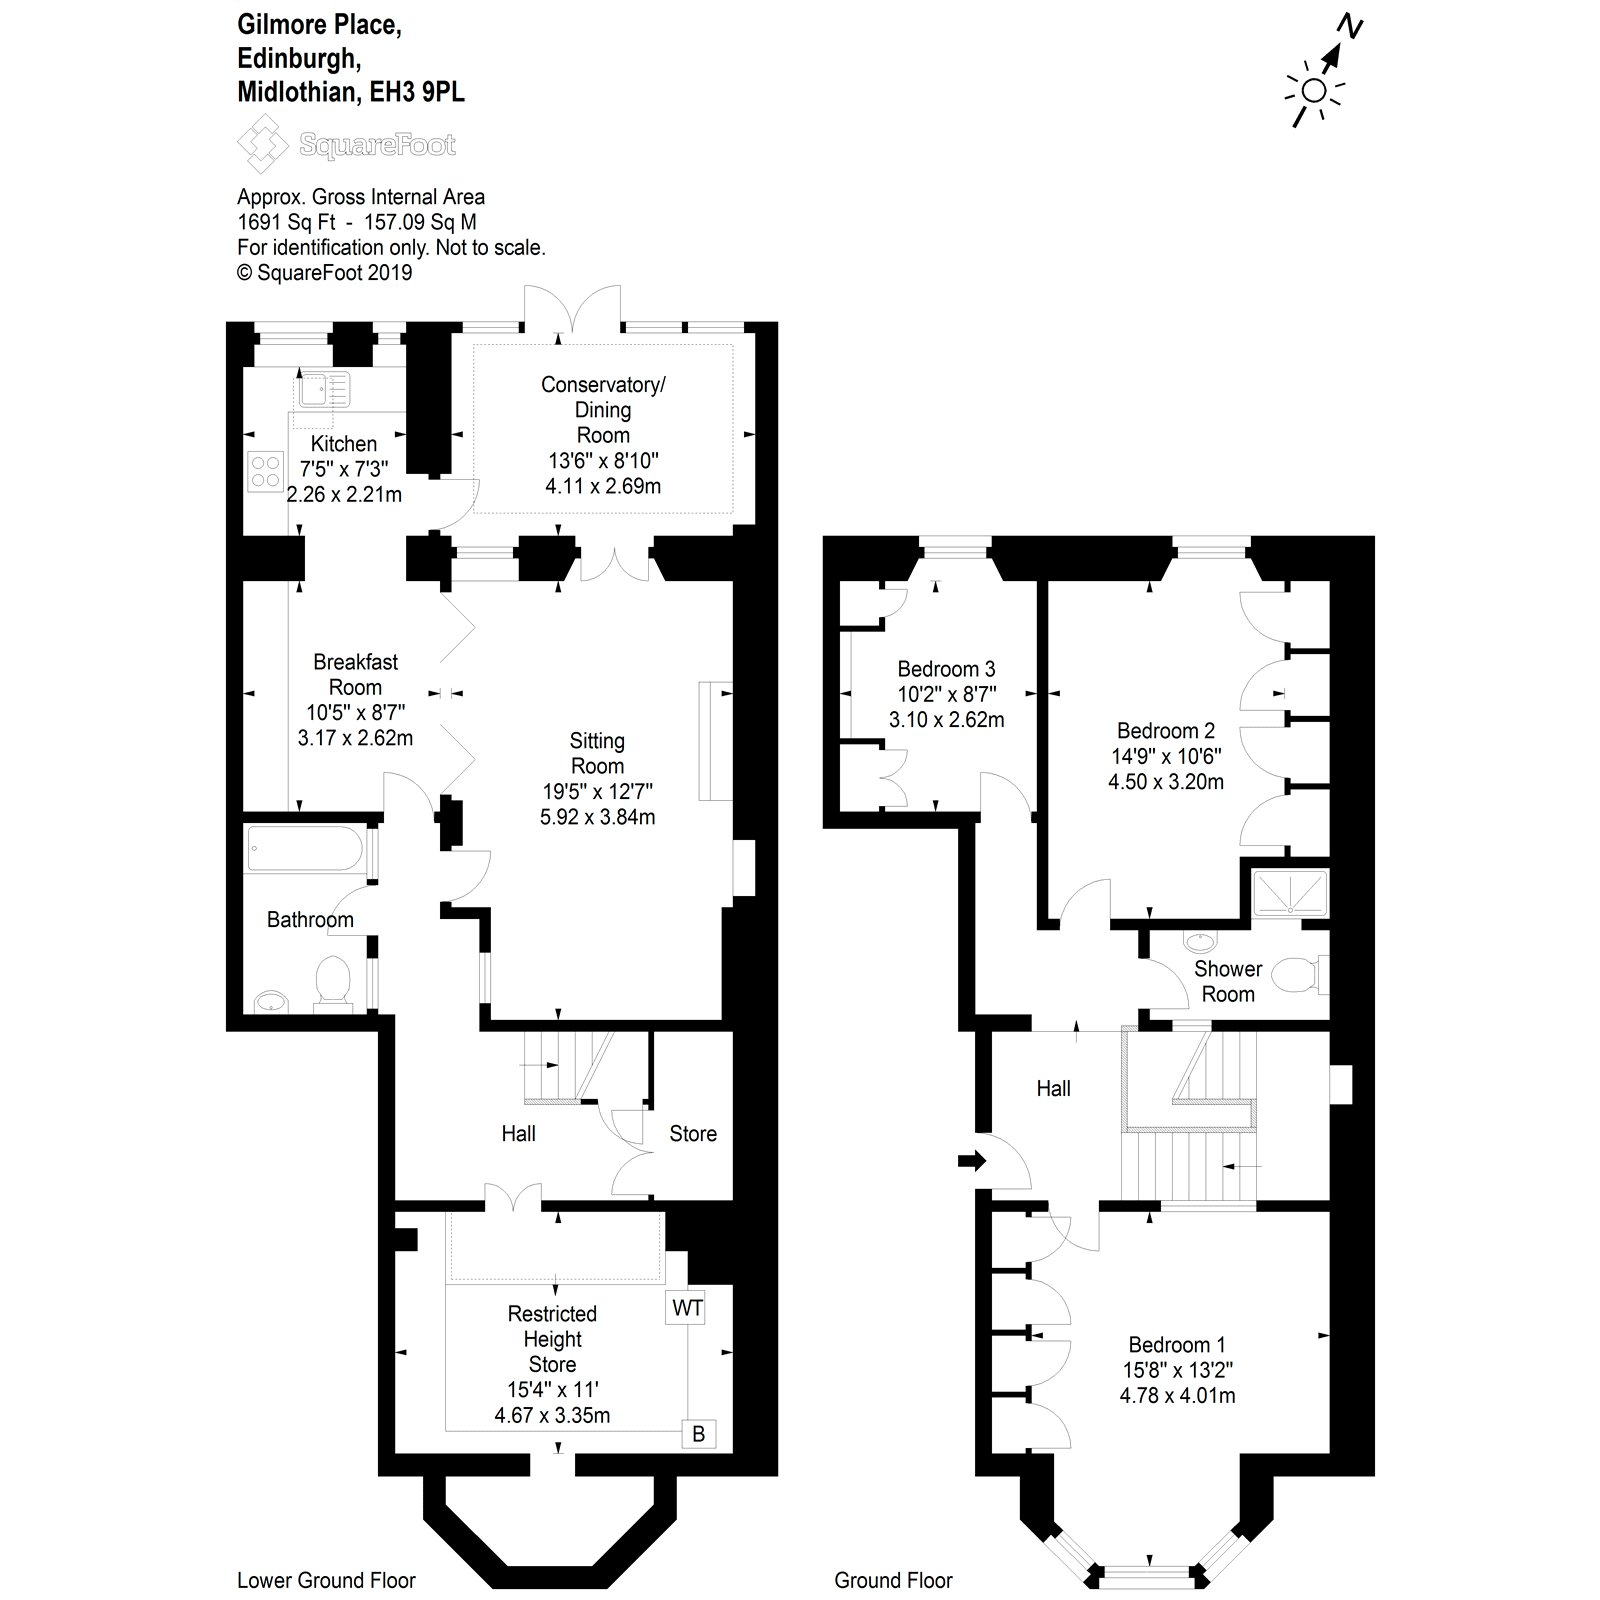 Floorplans for Gilmore Place, Edinburgh, Midlothian, EH3